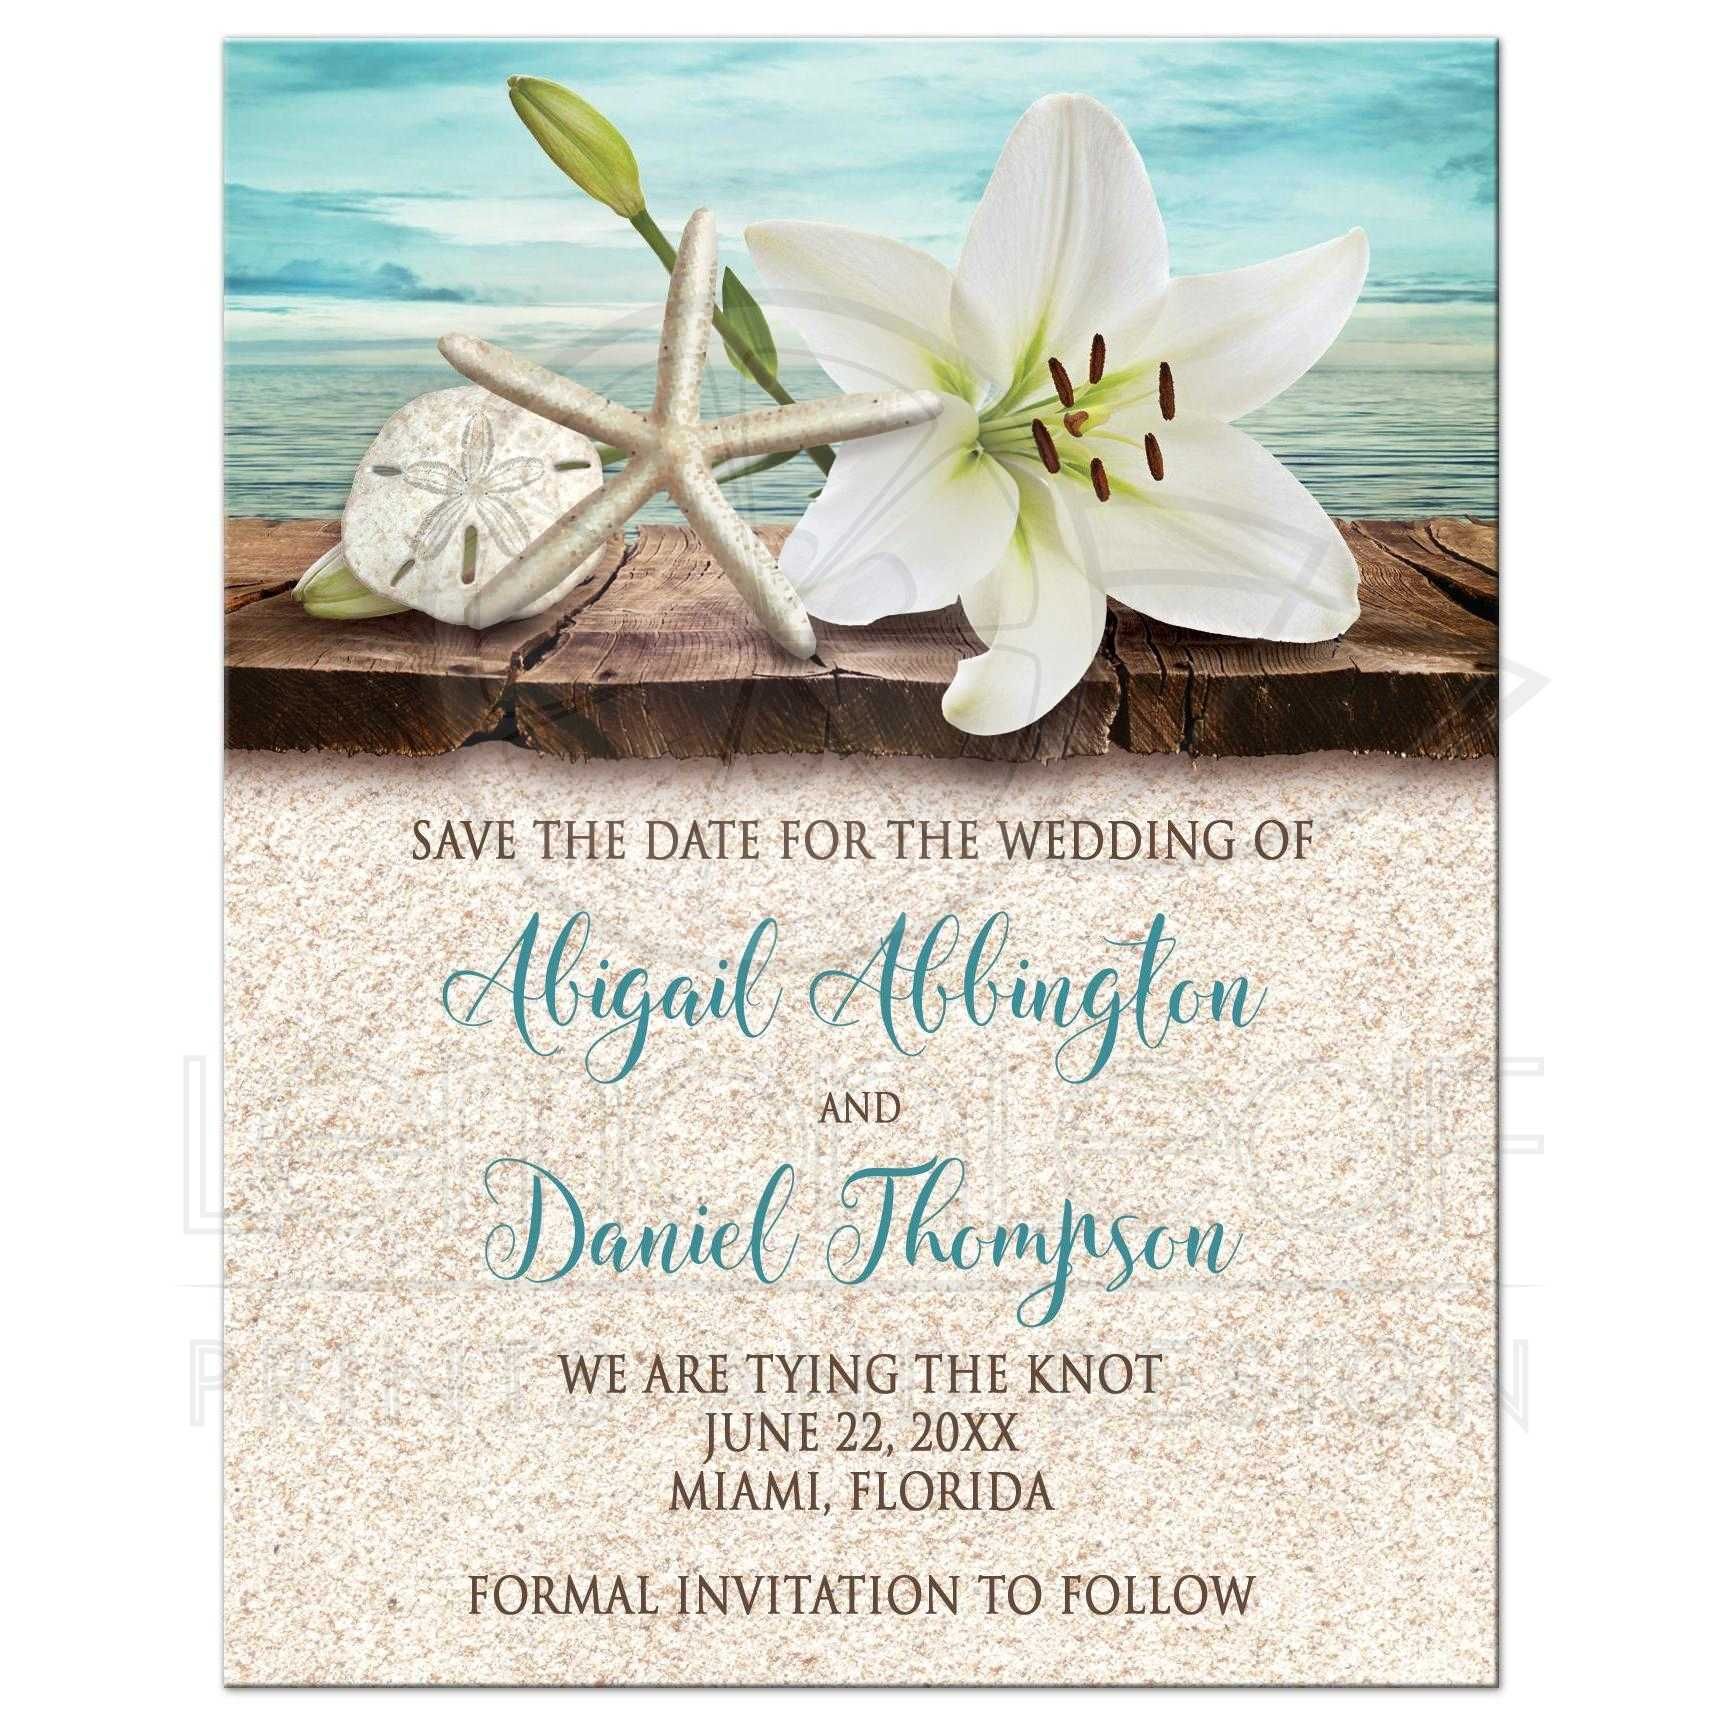 43256 Rectangle Lily Seashell Sand Beach Save The Date Cards New Jpg T 1470174980